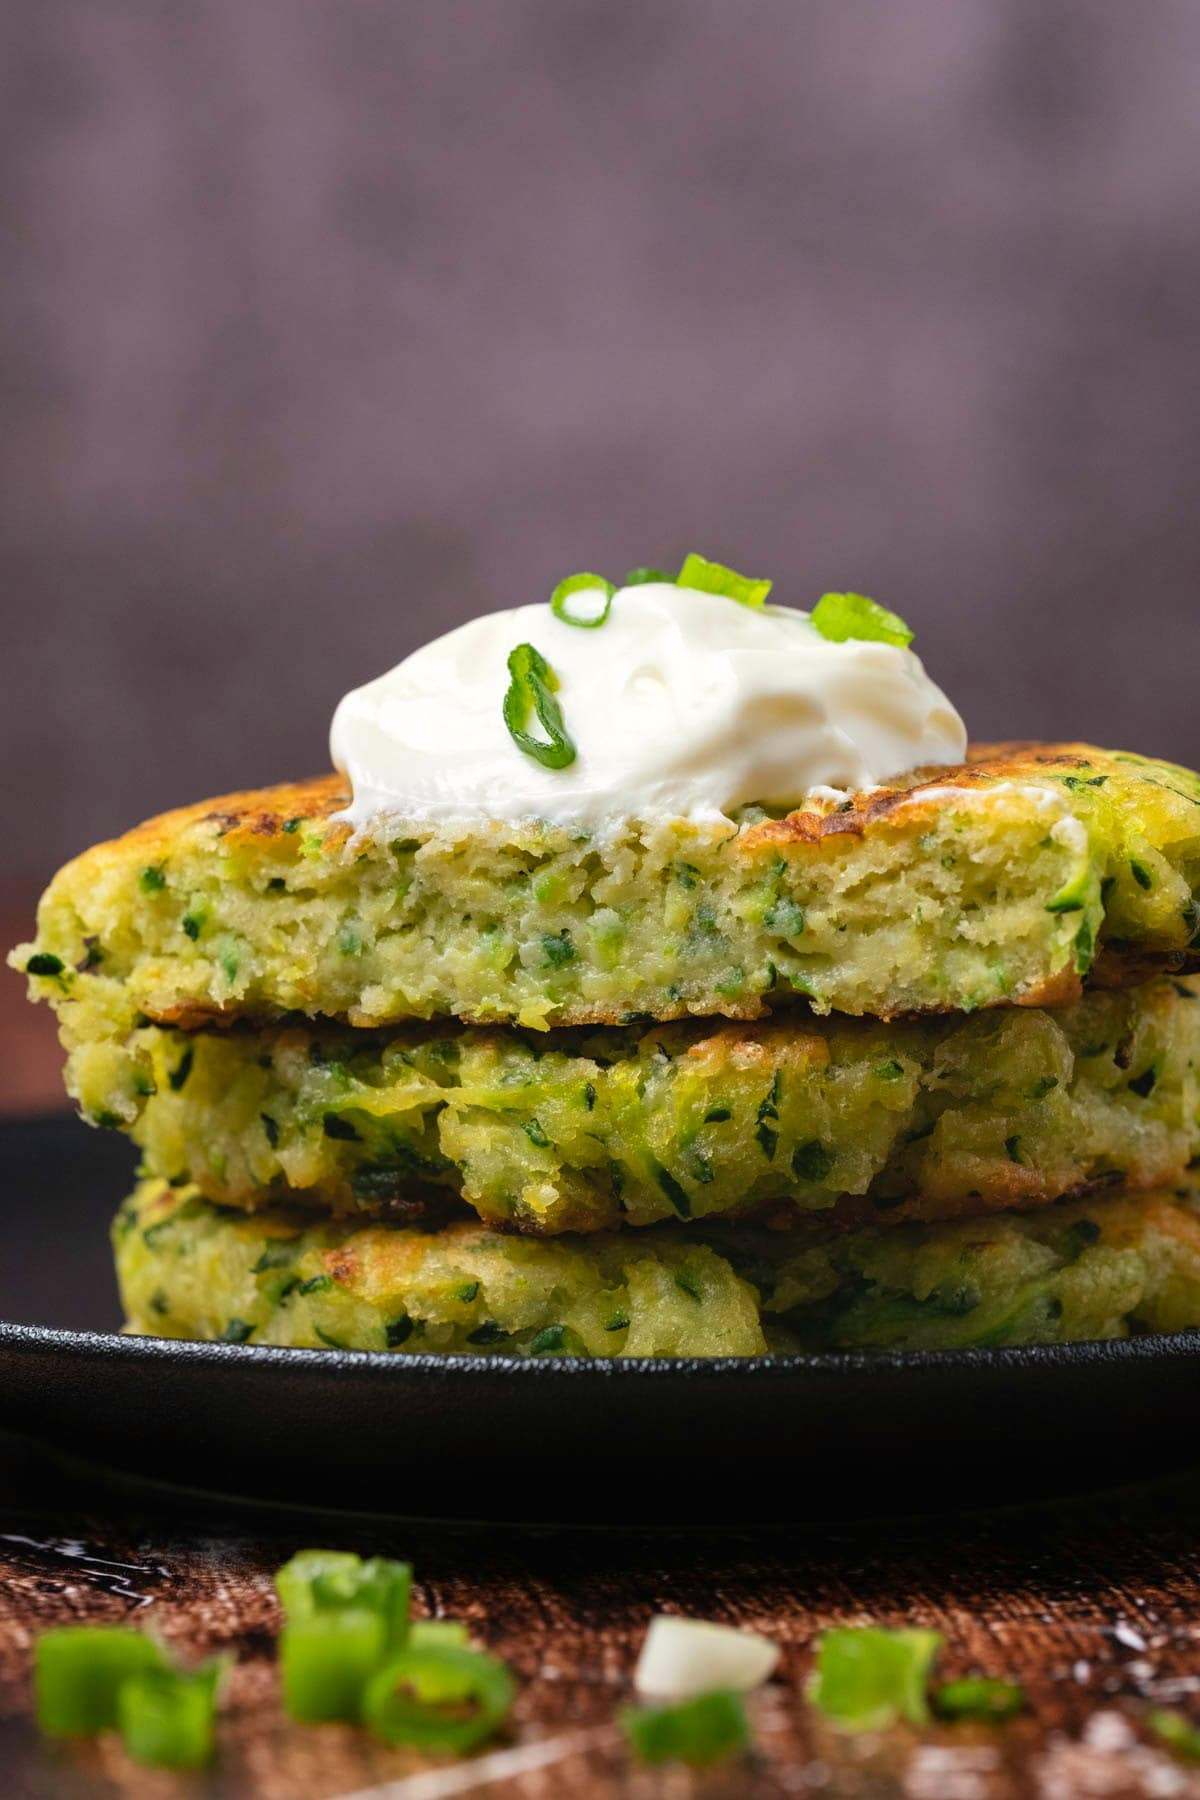 Zucchini fritters in a stack with the top fritter sliced in half.